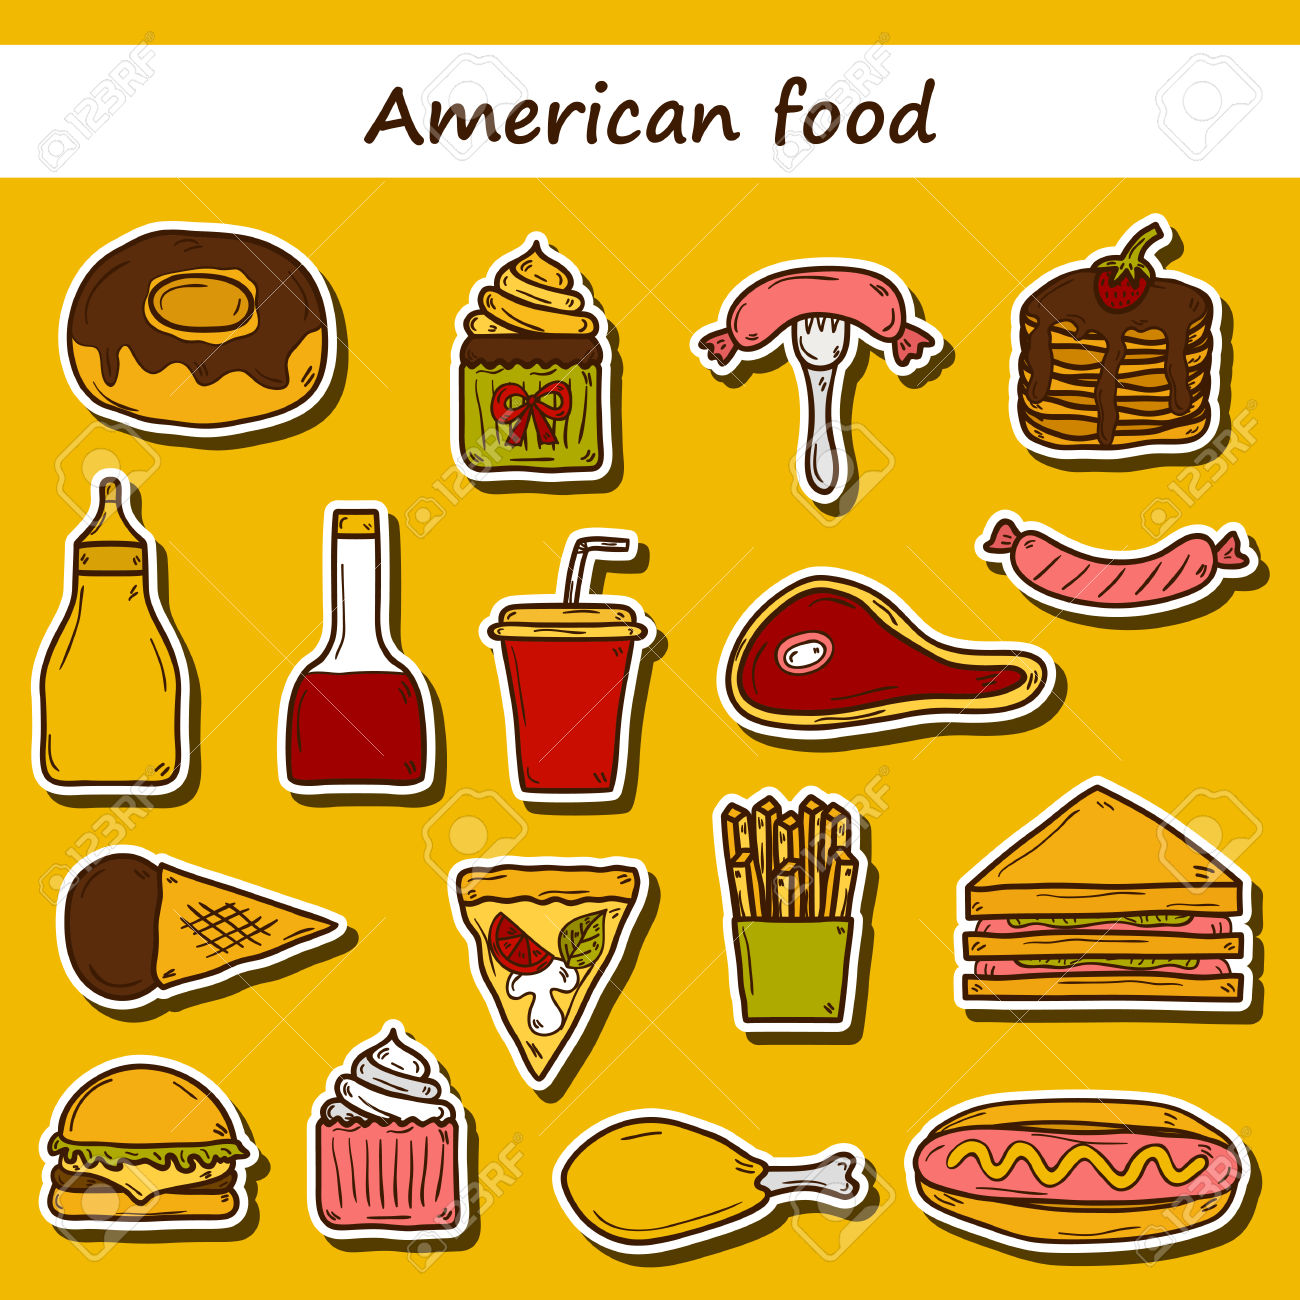 Set Of Cartoon Stickers On American Food Theme: Fried Potato.